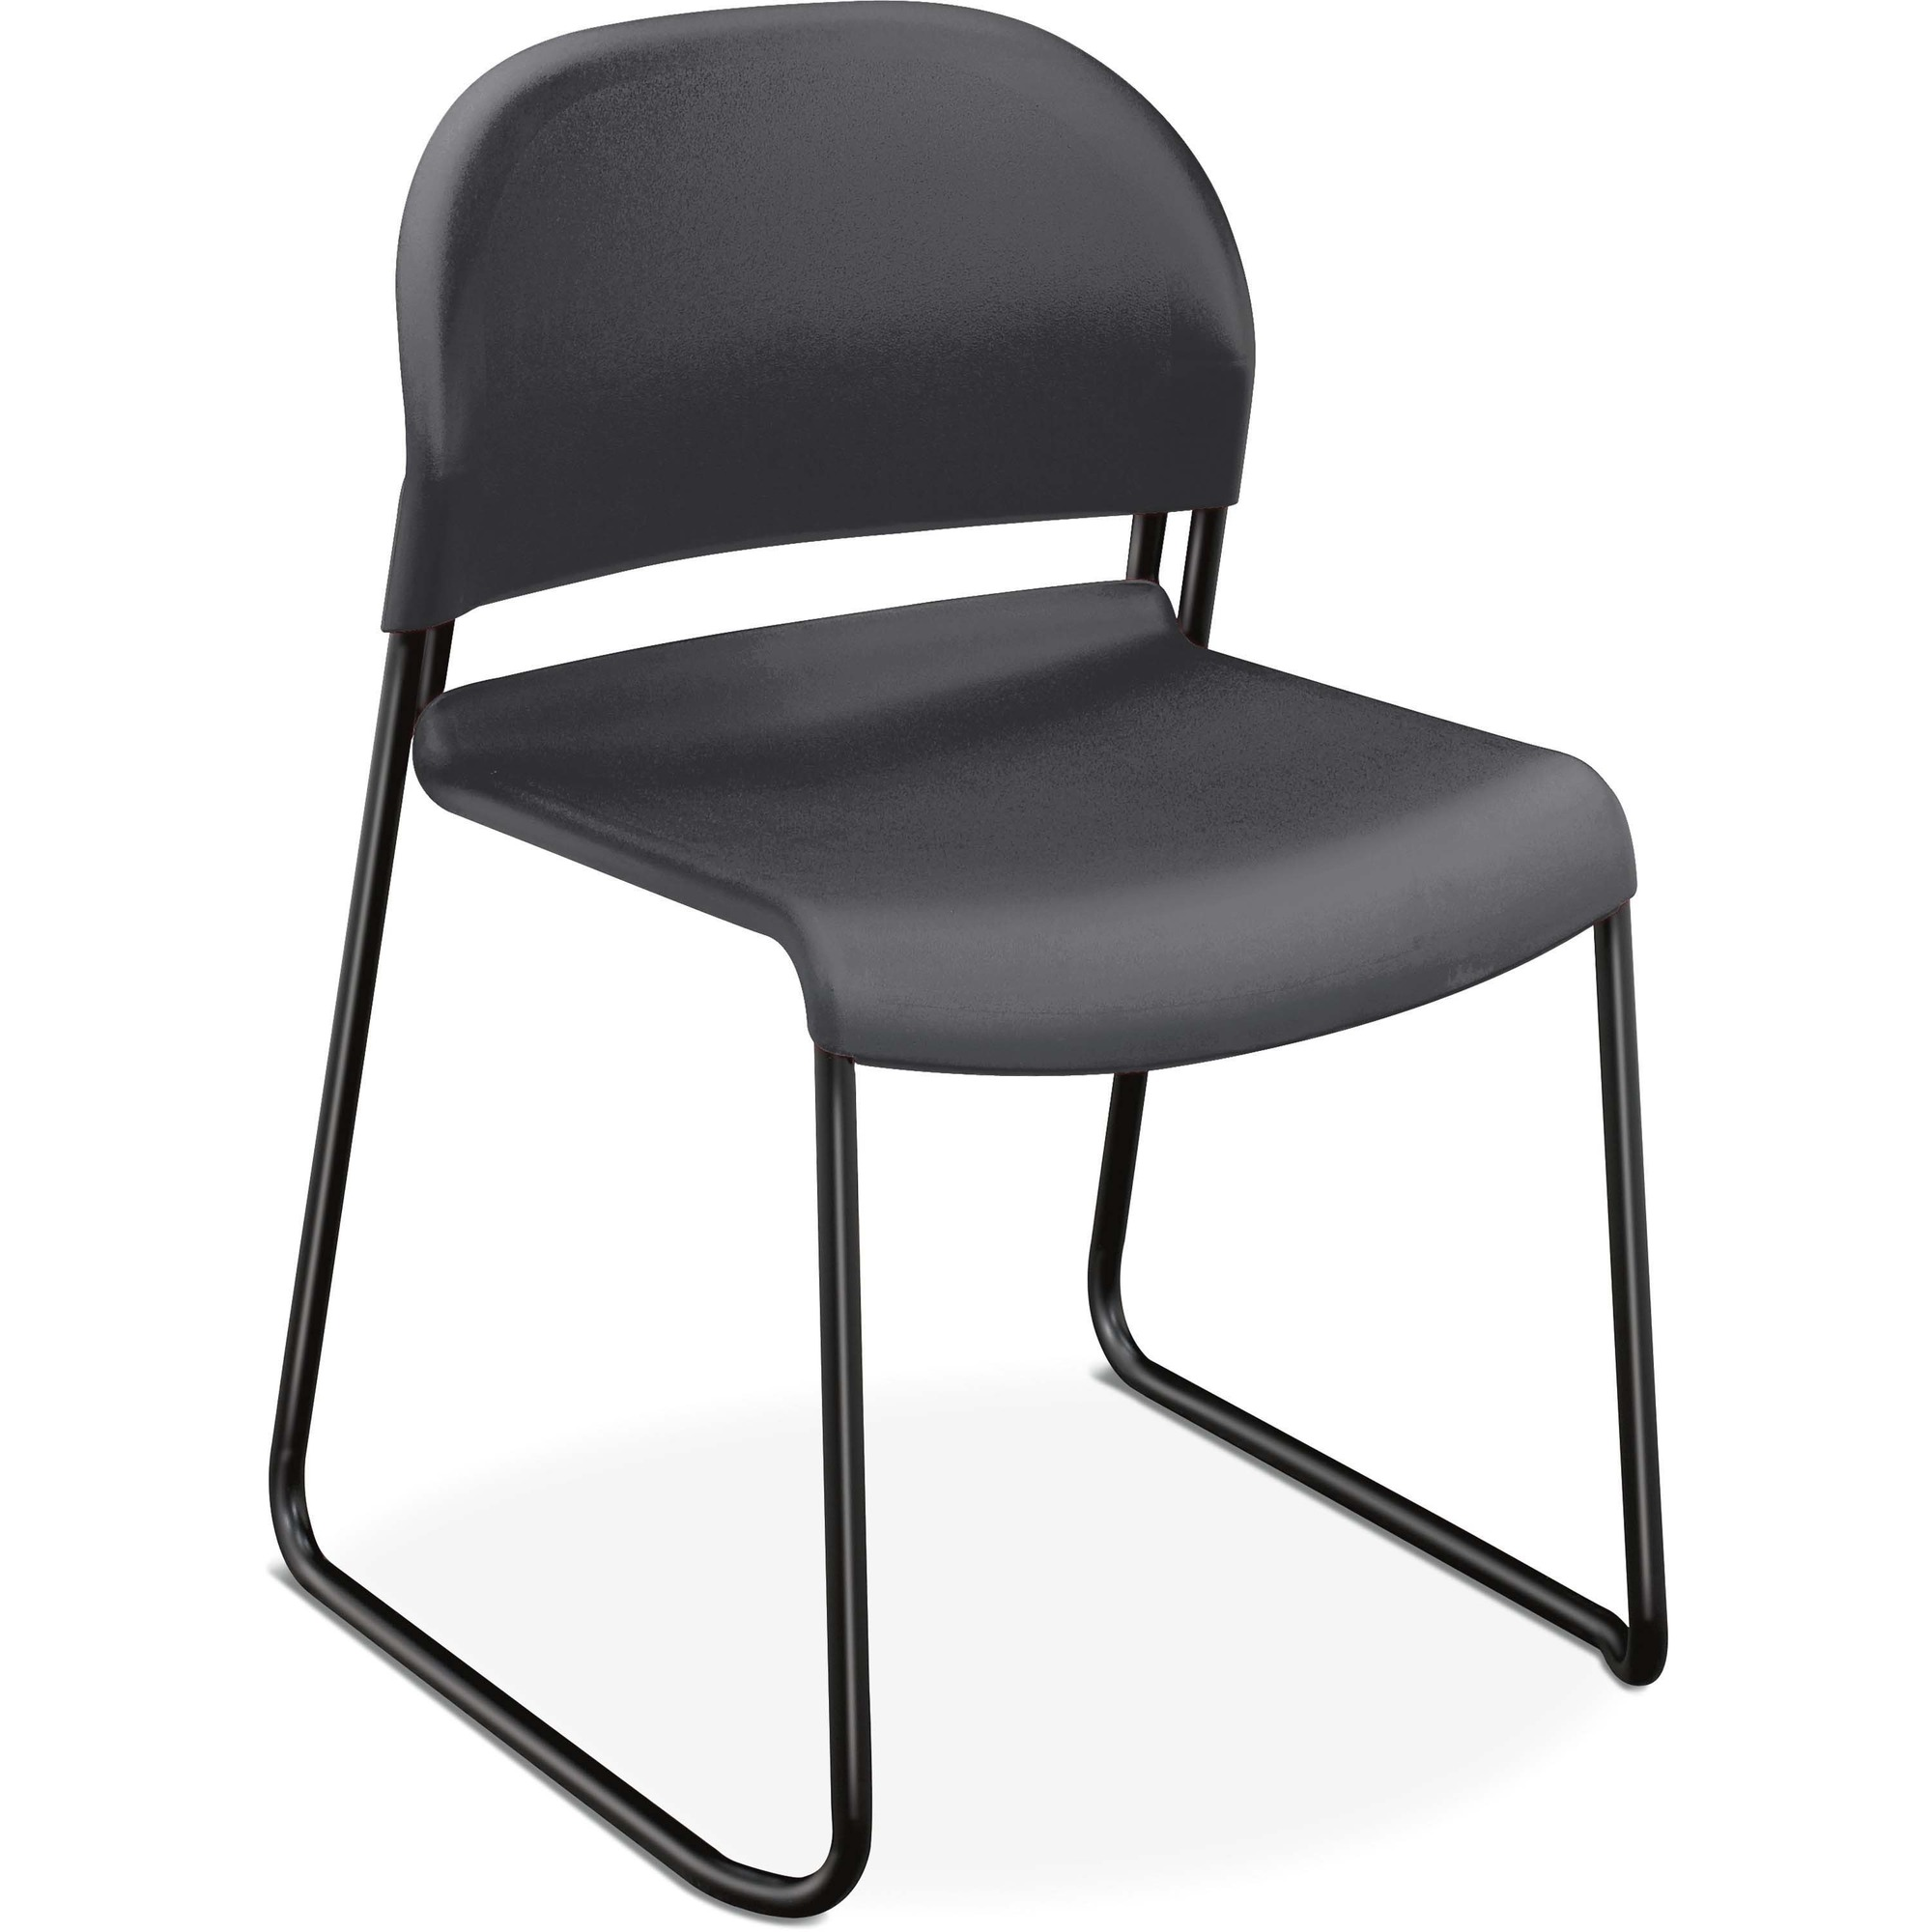 The Hon Company Hon Gueststacker Stacking Chair 4 Pack Plastic Lava Seat Black Frame Black 18 Seat Width X 19 Seat Depth 21 Width X 21 5